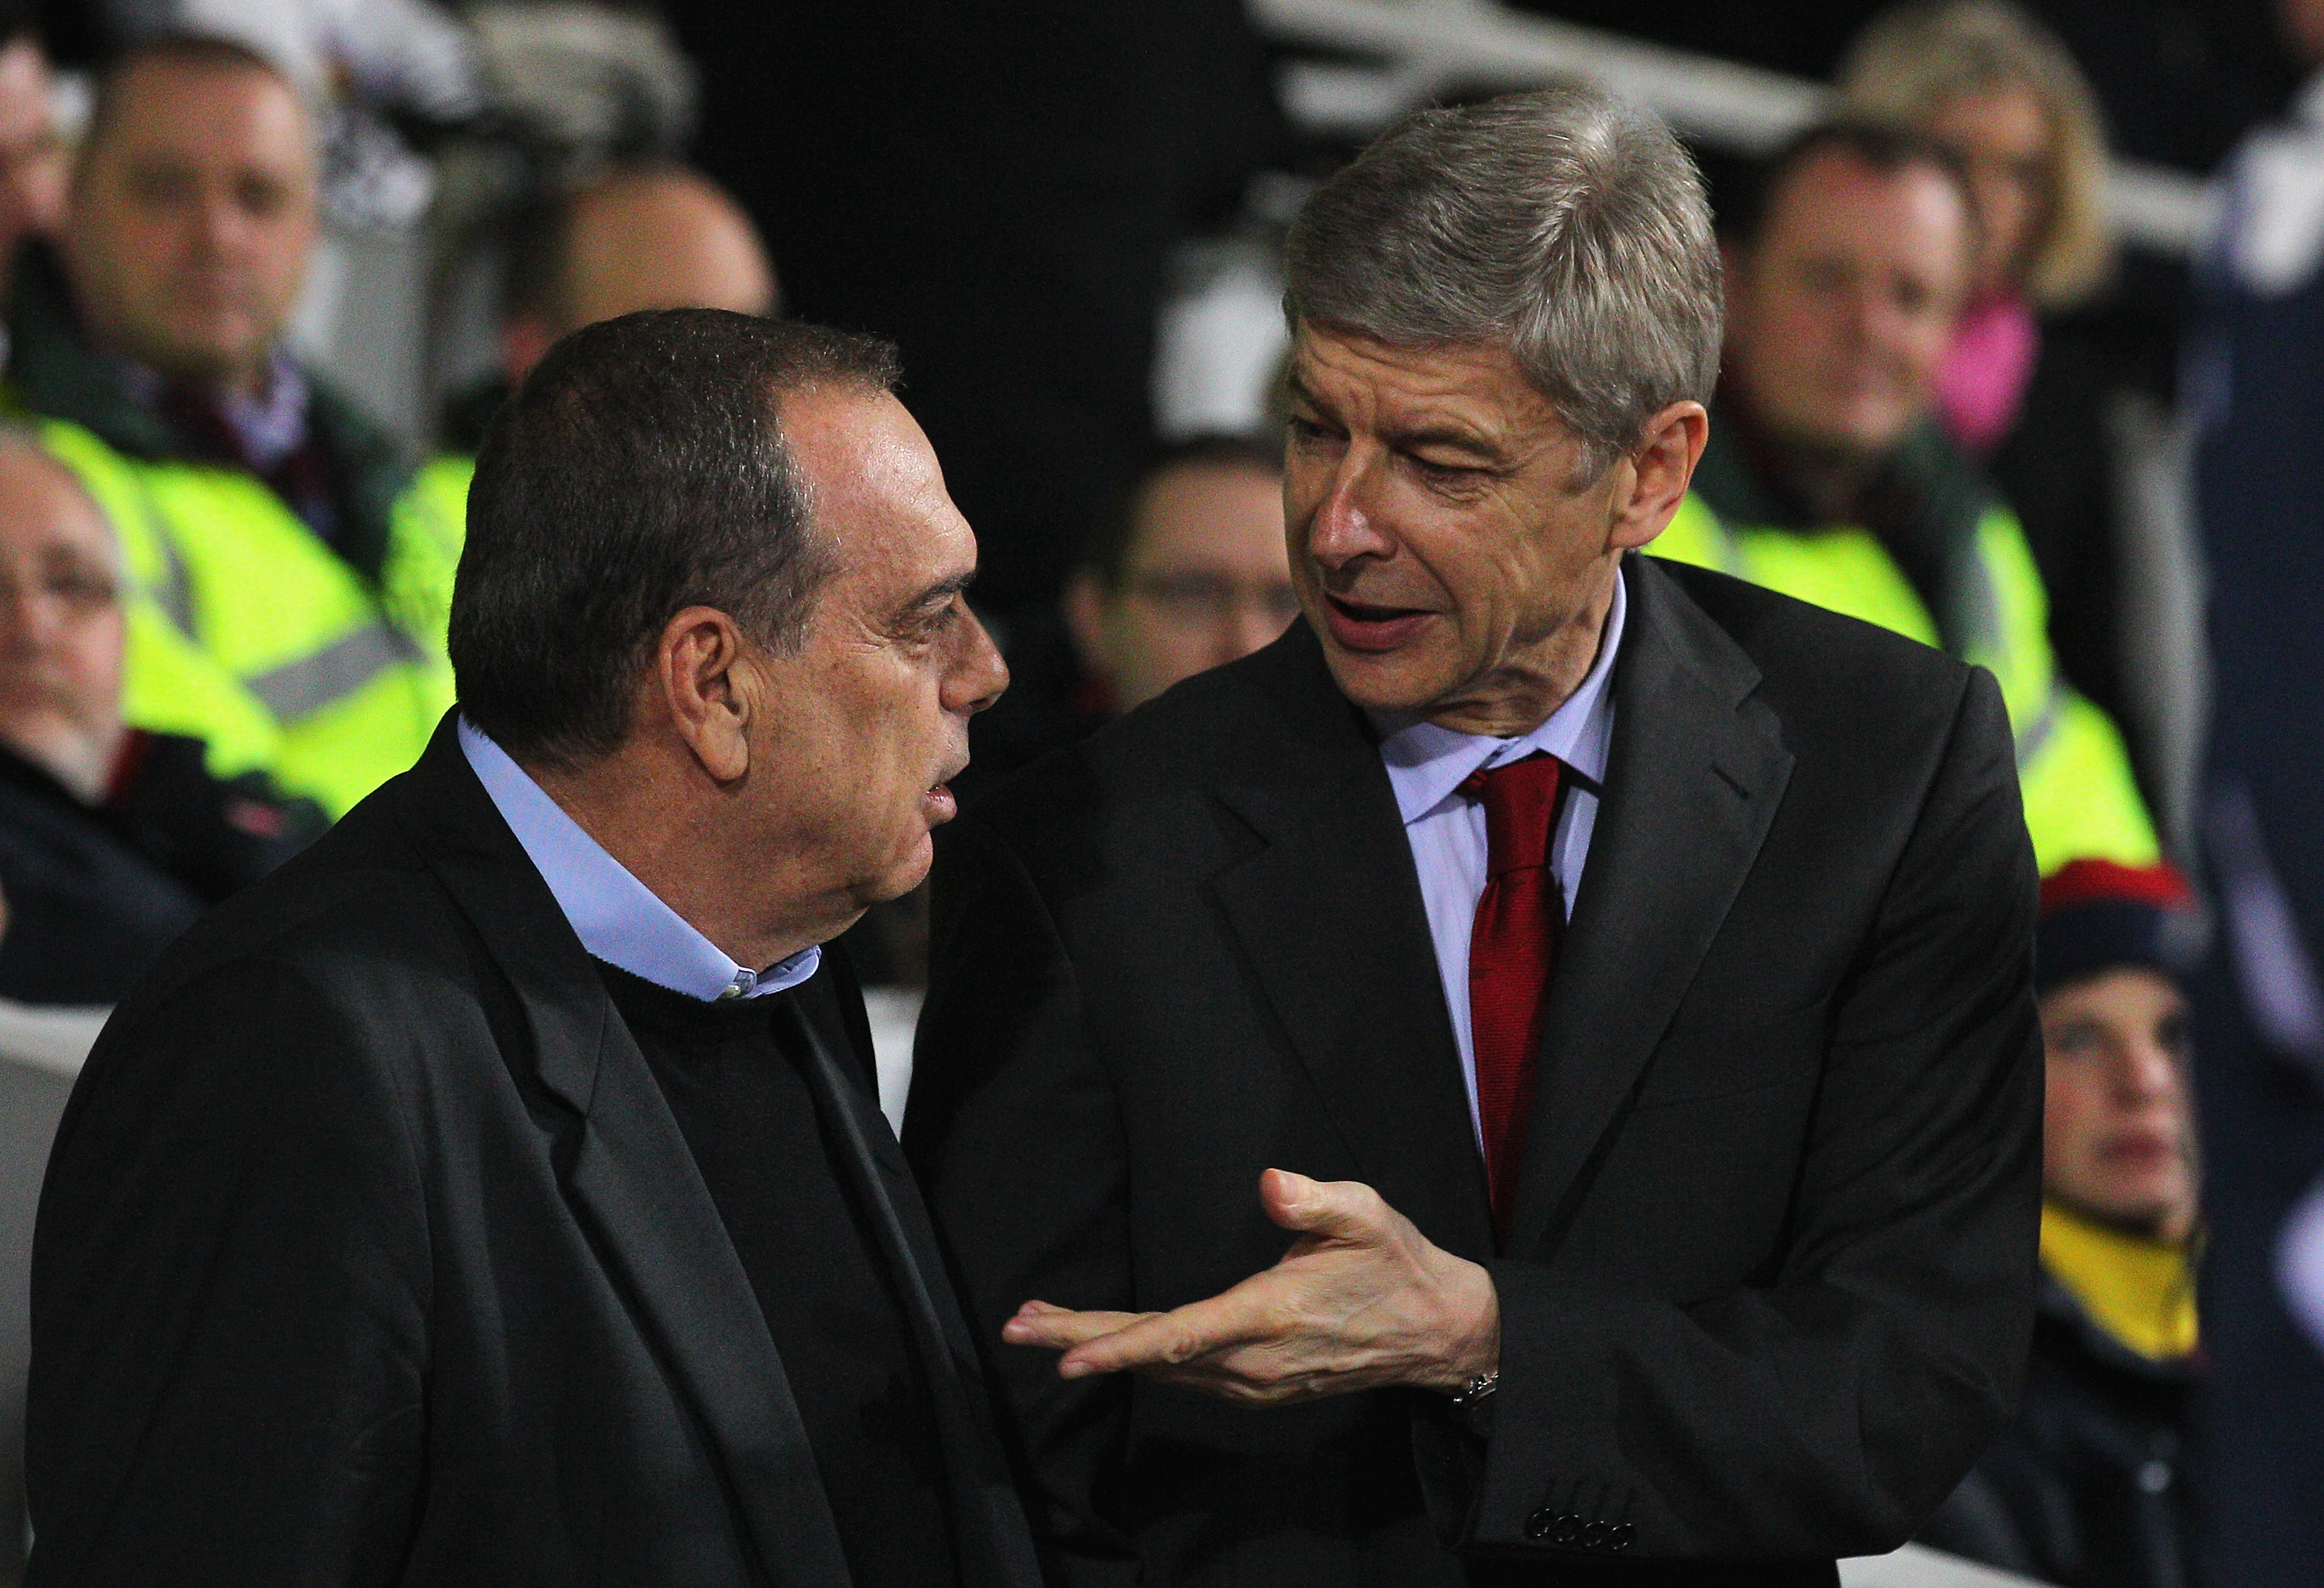 LONDON, ENGLAND - JANUARY 15:  Avram Grant (L), manager of West Ham United talks to Arsene Wenger, Manager of Arsenal ahead of the Barclays Premier League match between West Ham United and Arsenal at the Boleyn Ground on January 15, 2011 in London, Englan